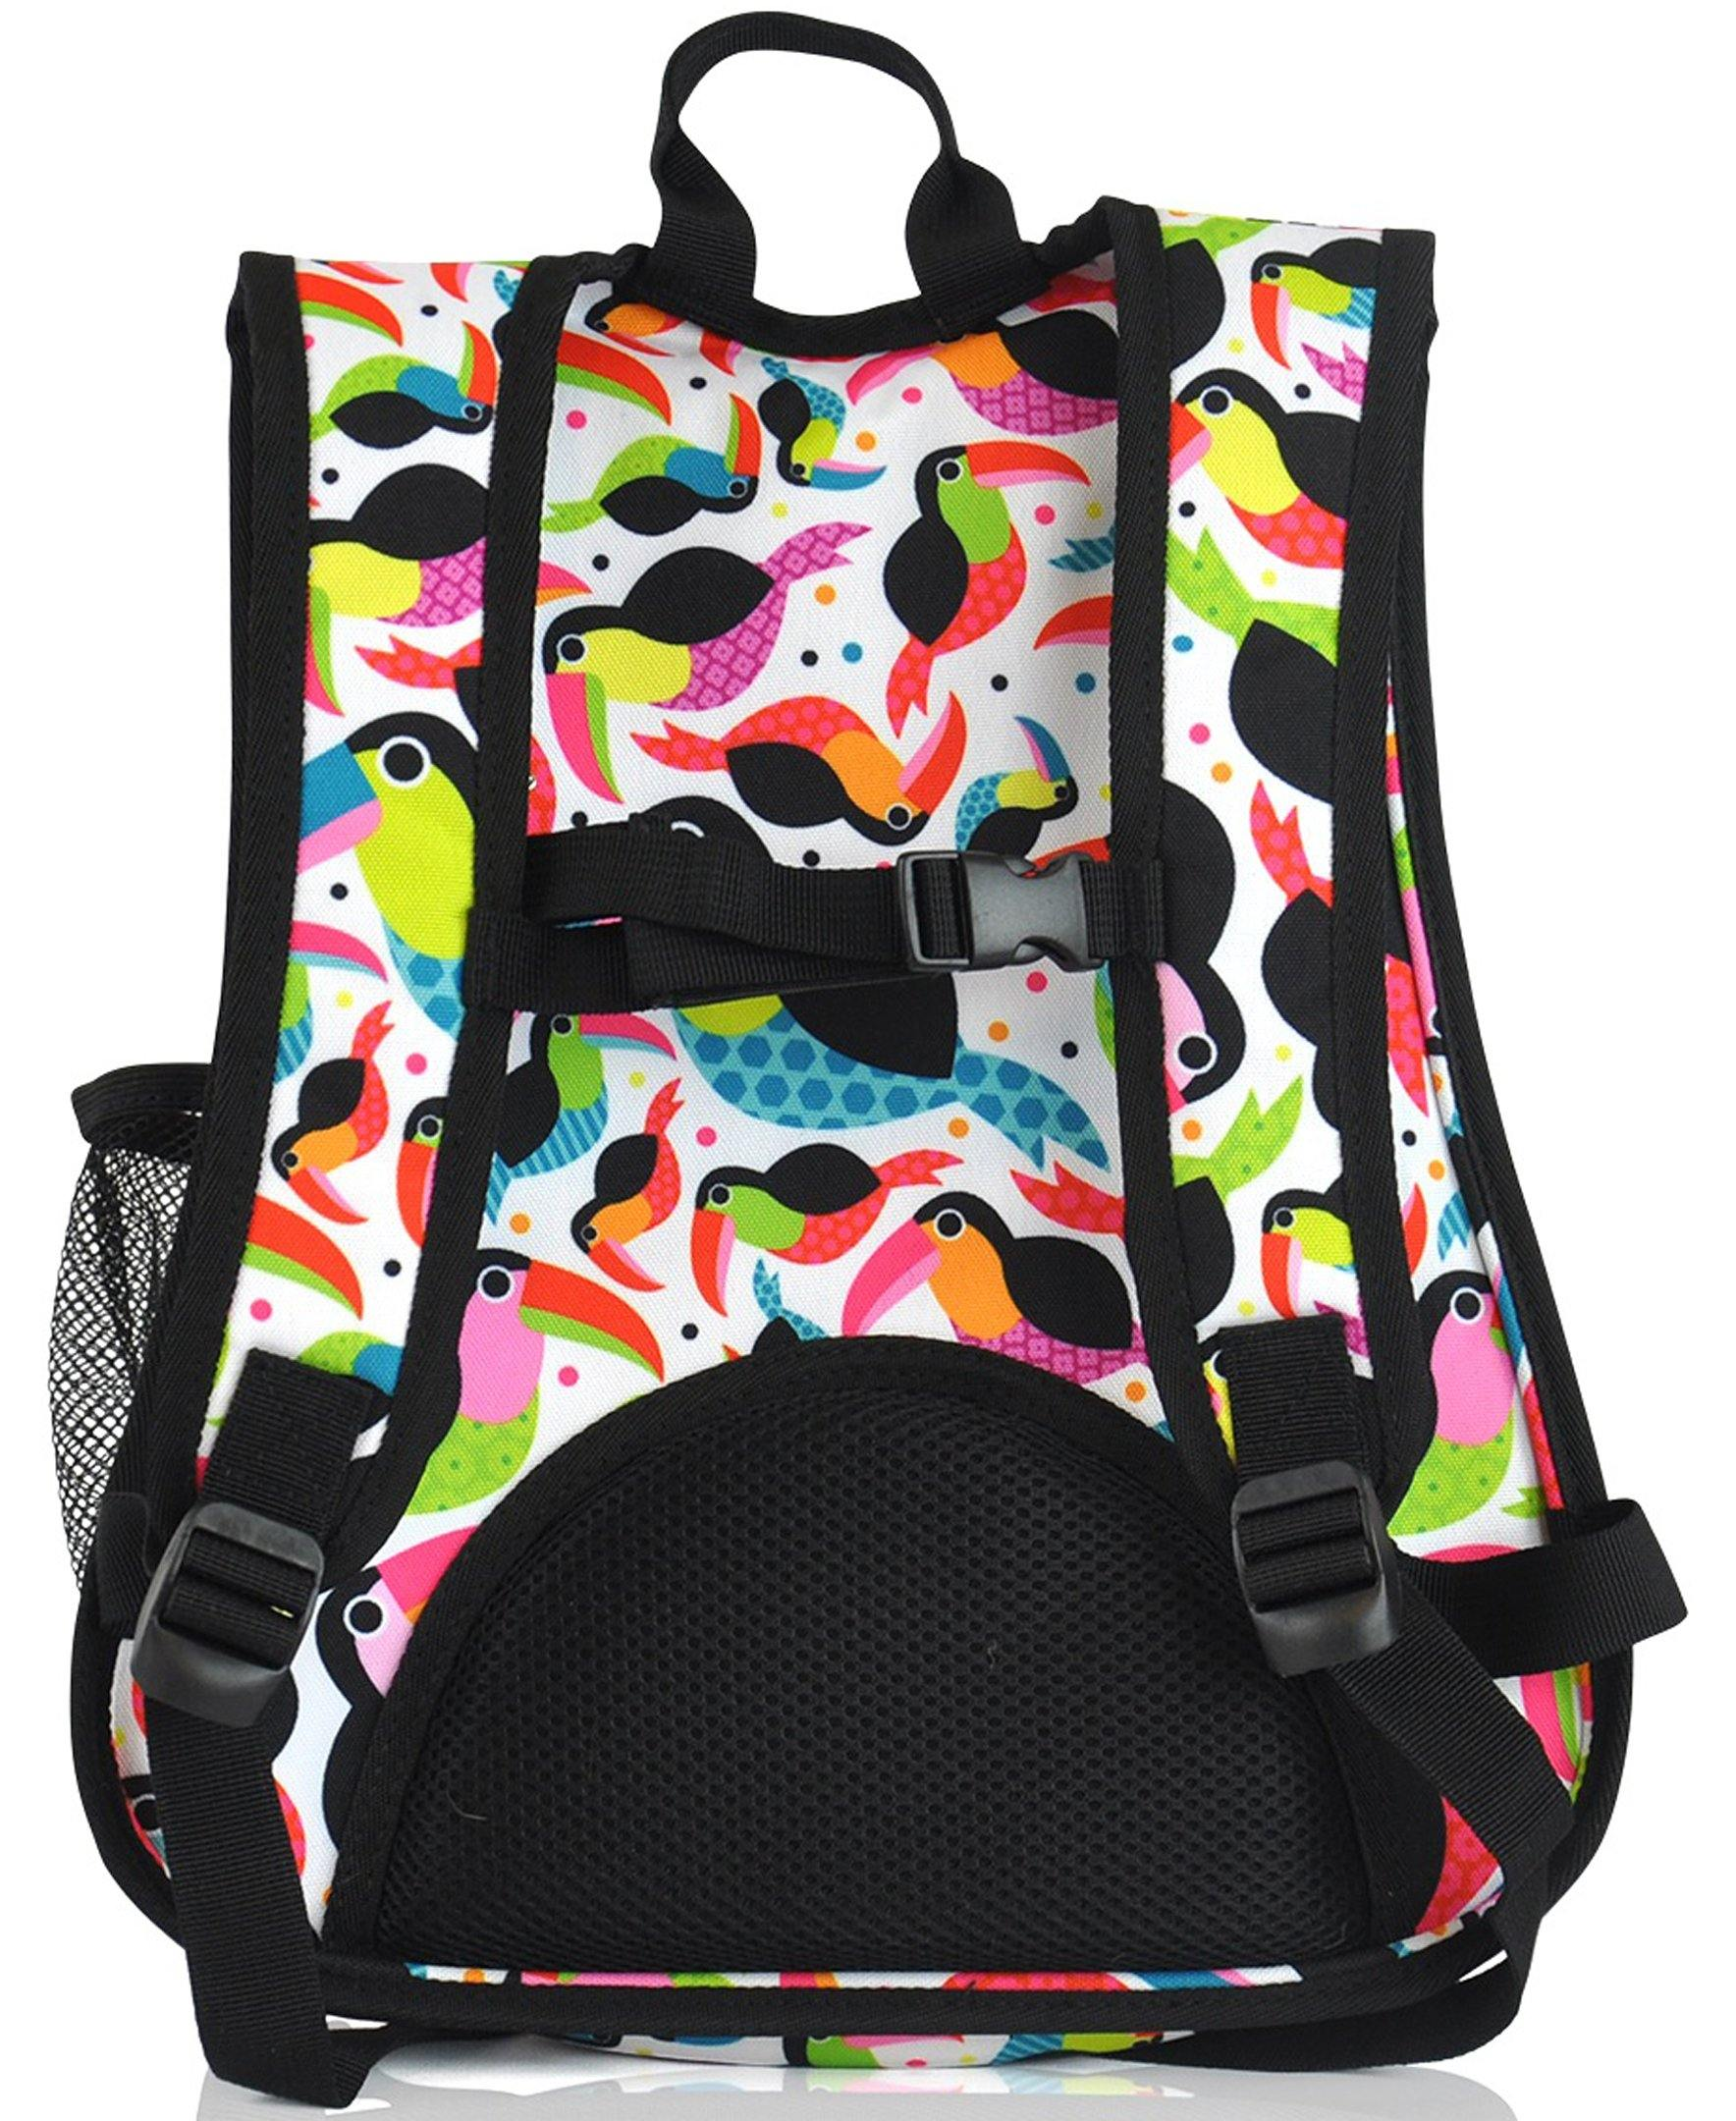 Obersee Kids Pre-School All-In-One Backpack With Cooler - Camo Airplane